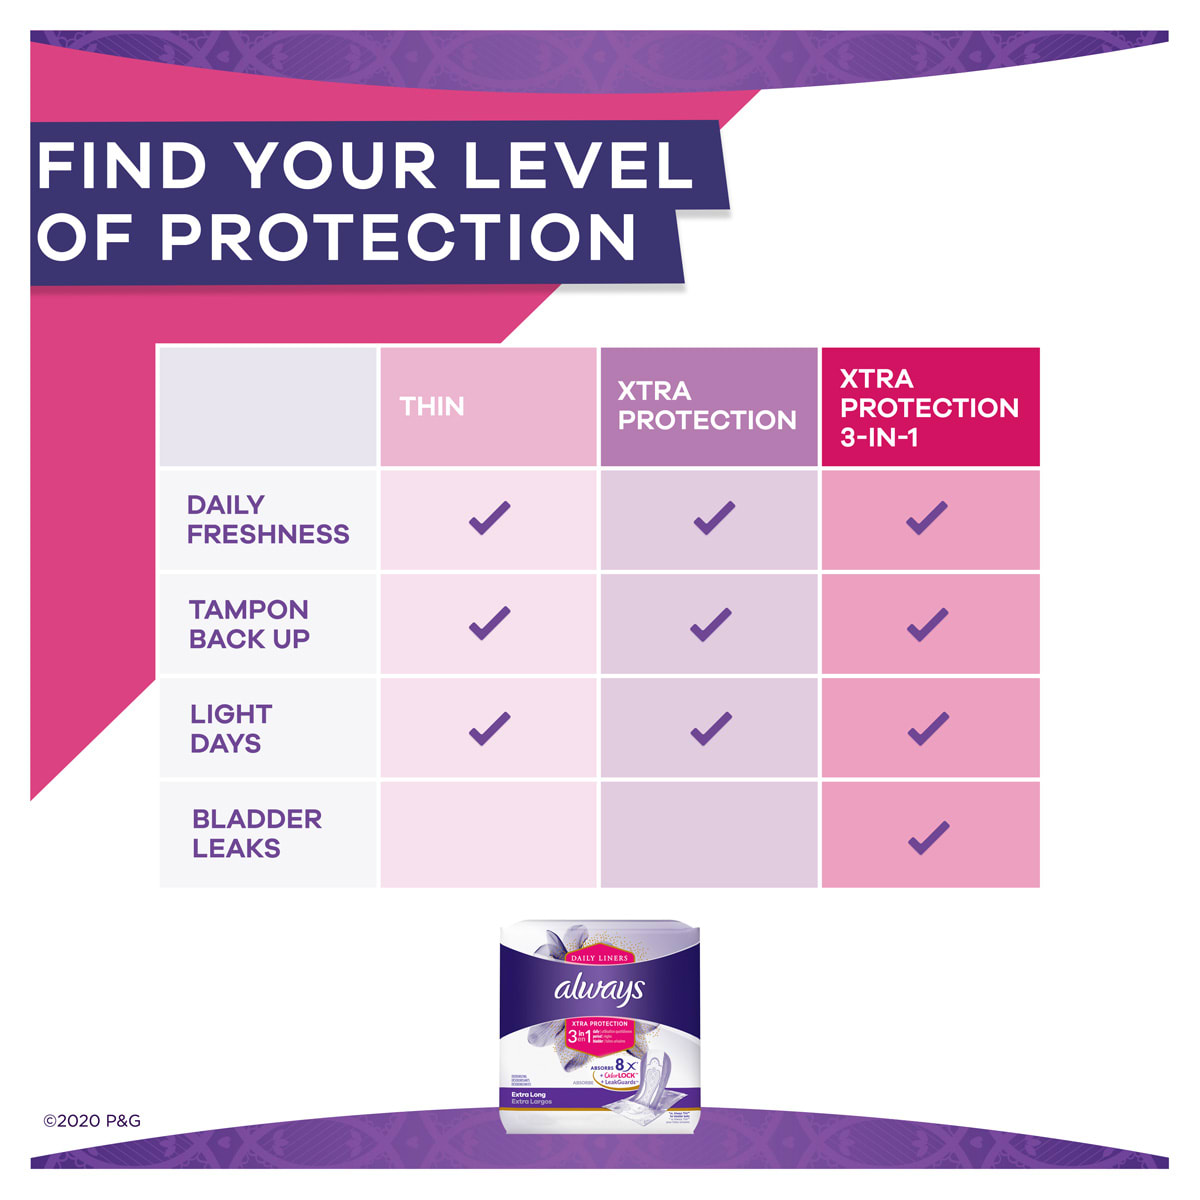 Always Xtra Protect 3 in 1 Extra Long Liners With LeakGuards Find Your Level of Protection